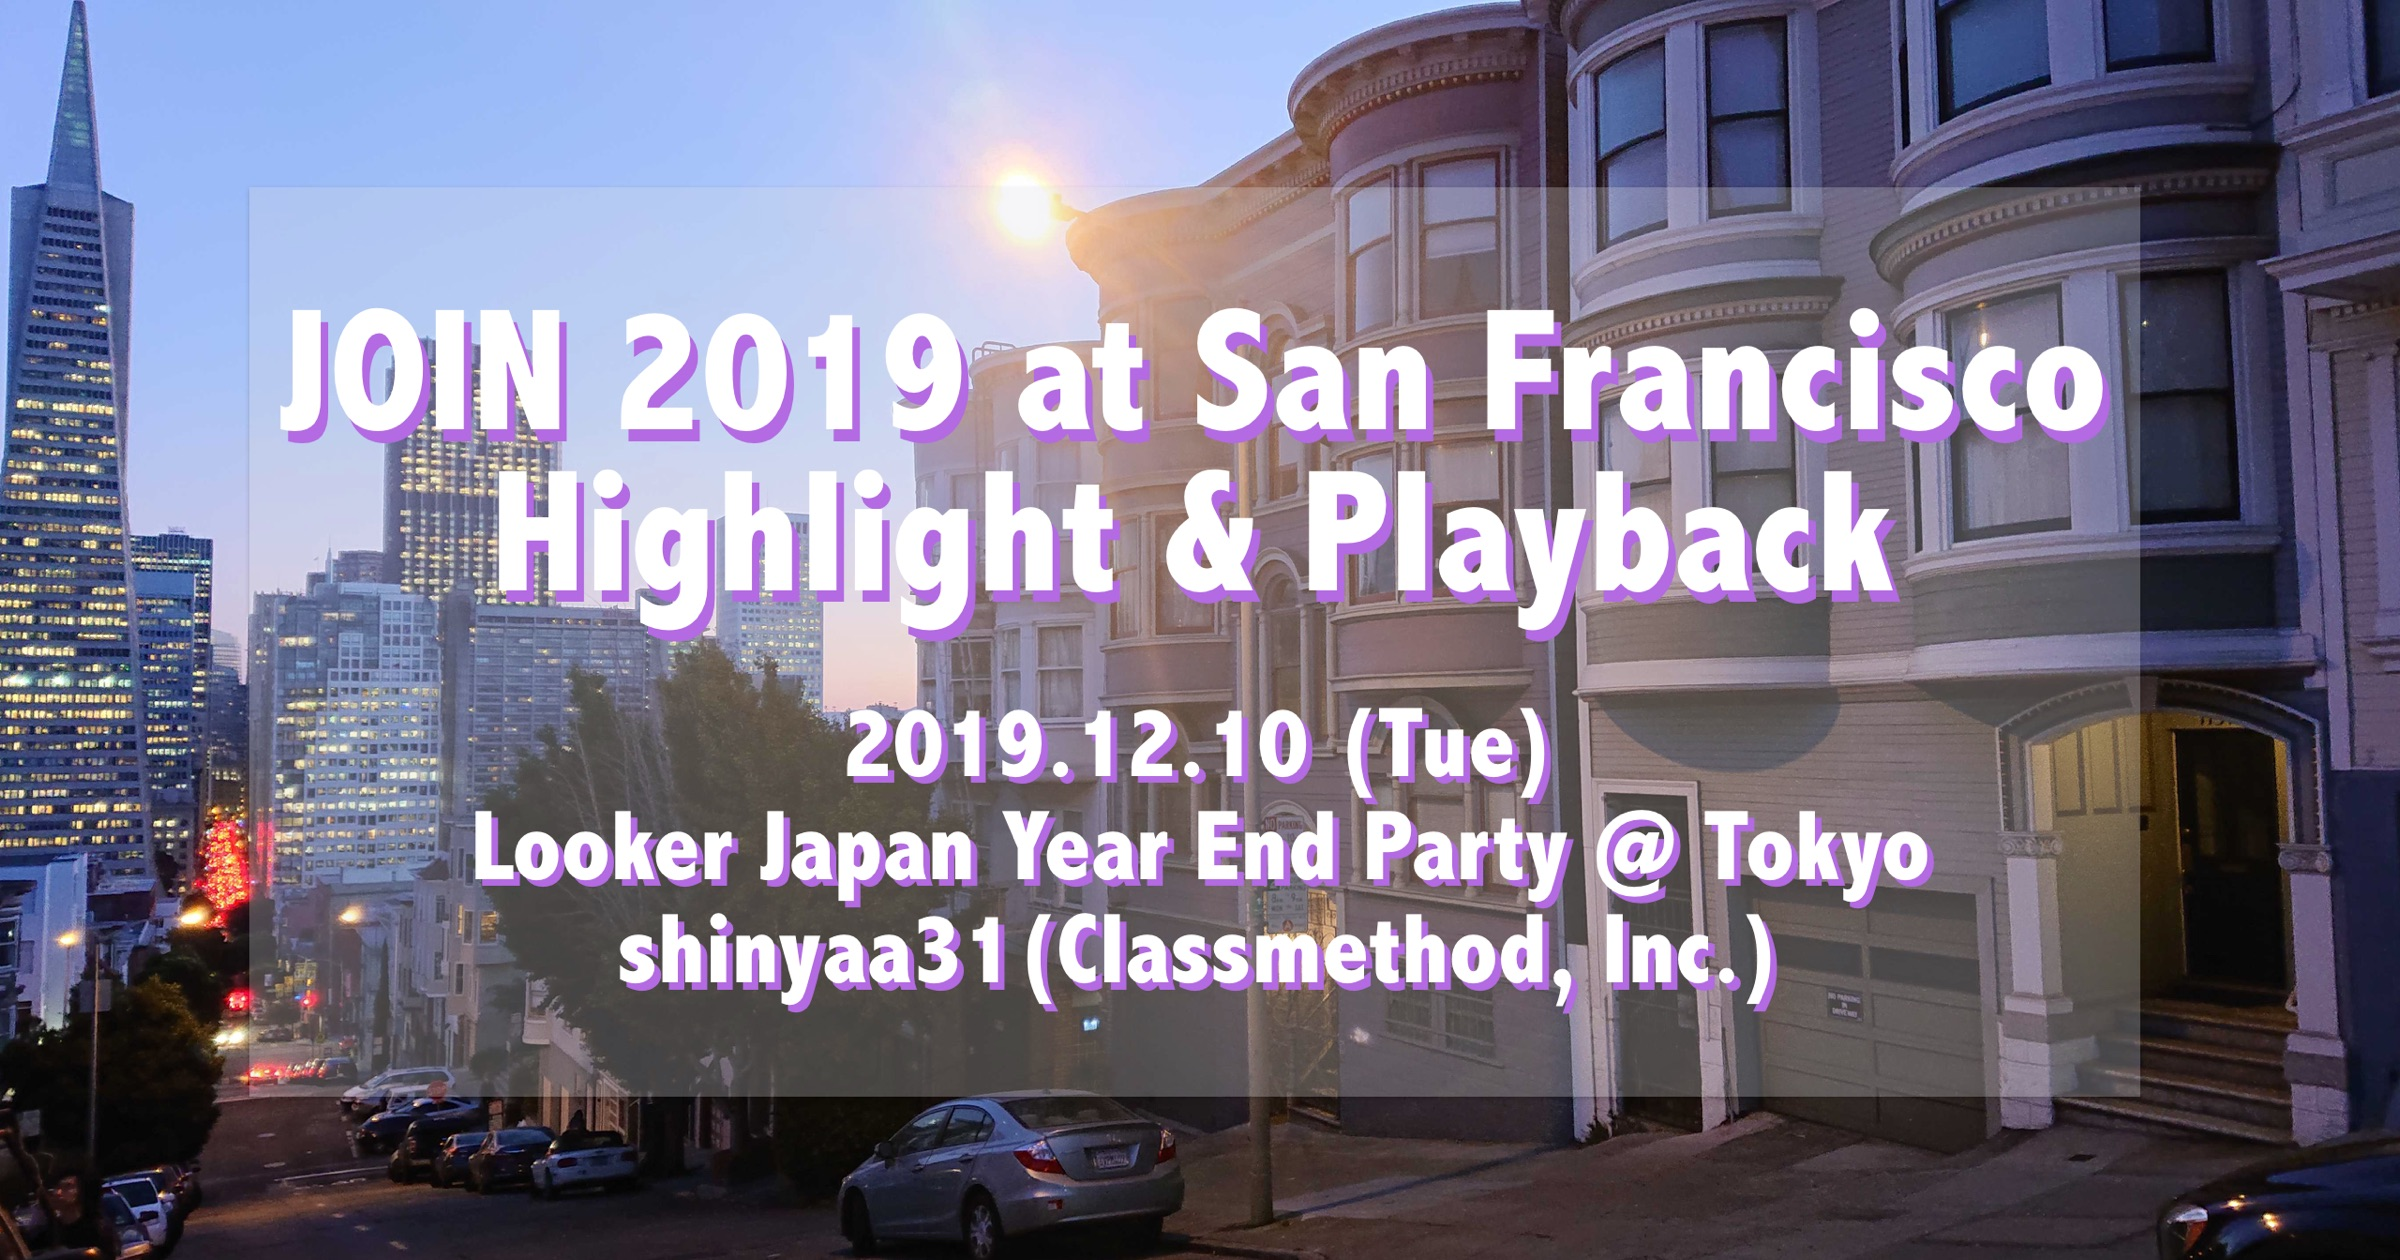 Looker Year End Party(忘年会)で『JOIN 2019』の参加報告をしてきました #looker #JOINdata